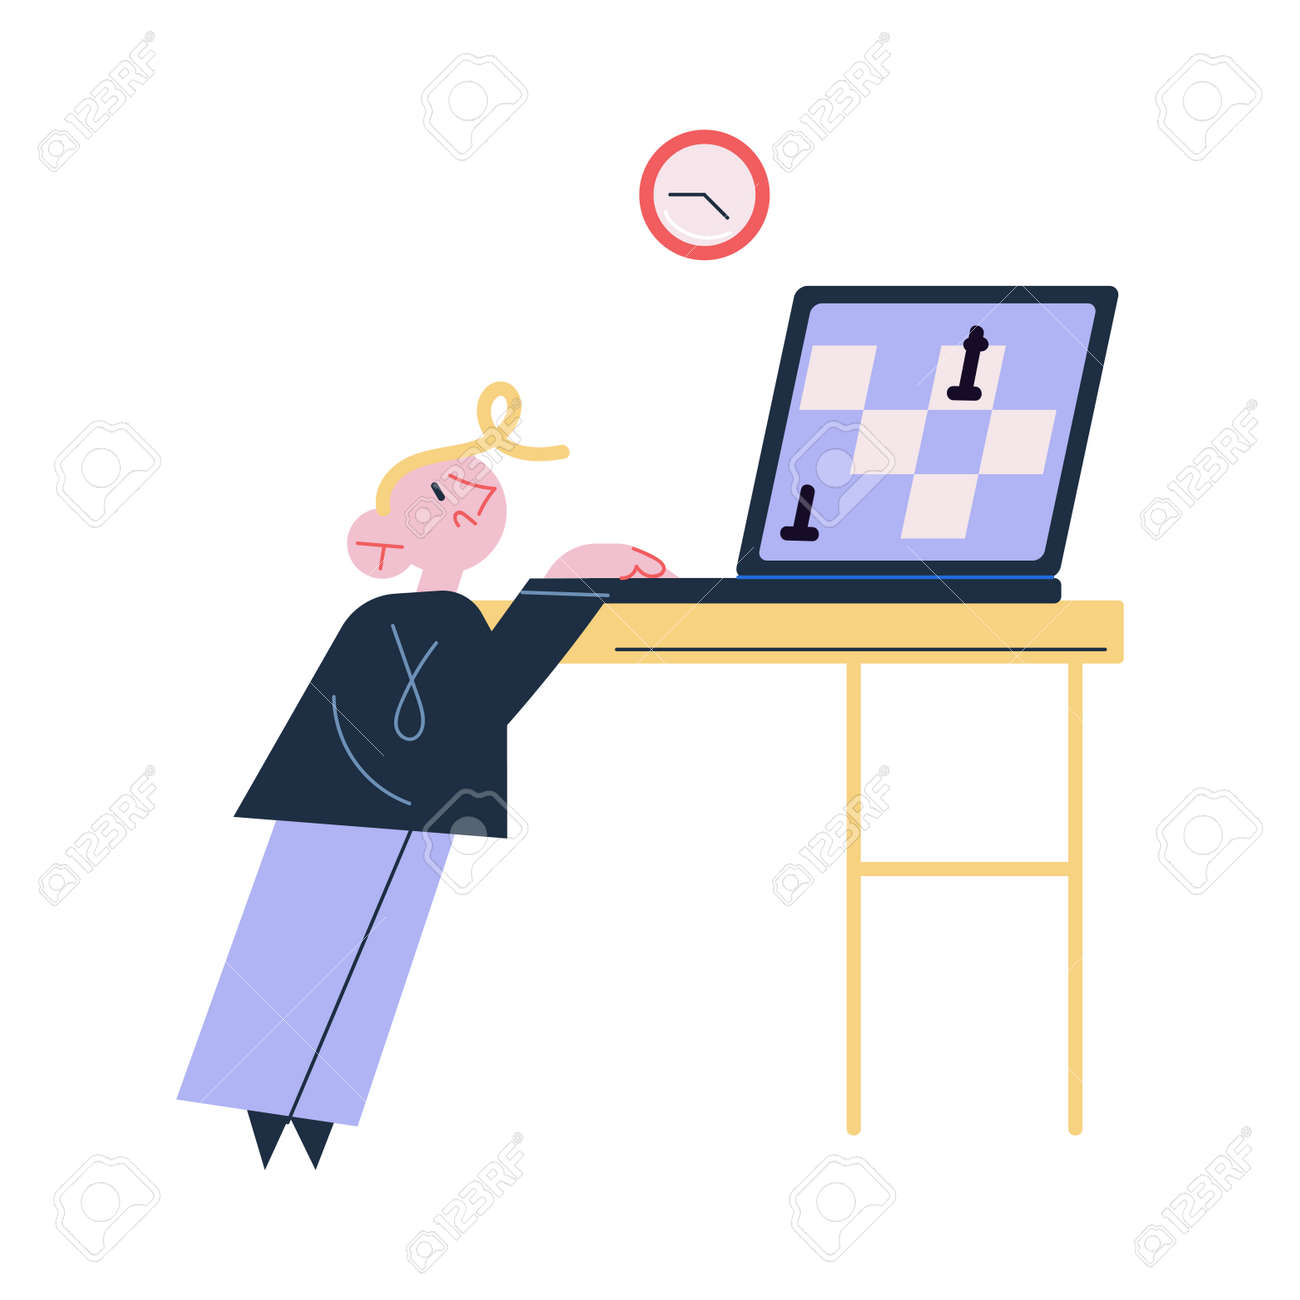 Small boy child standing and playing chess online on laptop on table - 164877211